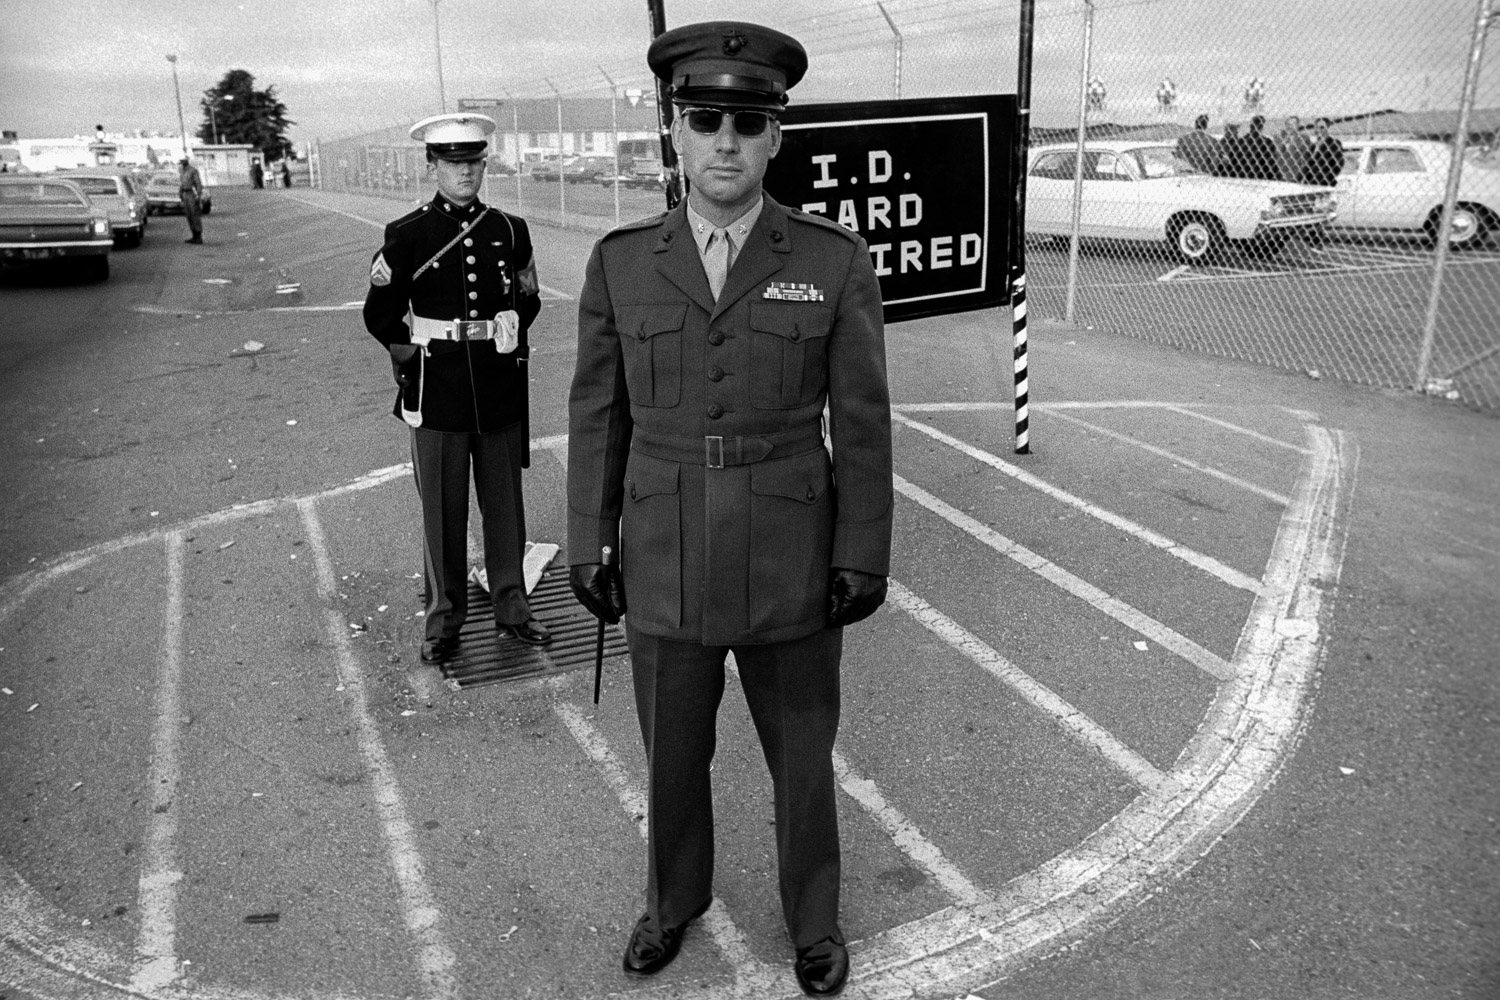 This Marine Corps officer was there to keep the rally from blocking the base gates. Note the riding crop in his right hand.